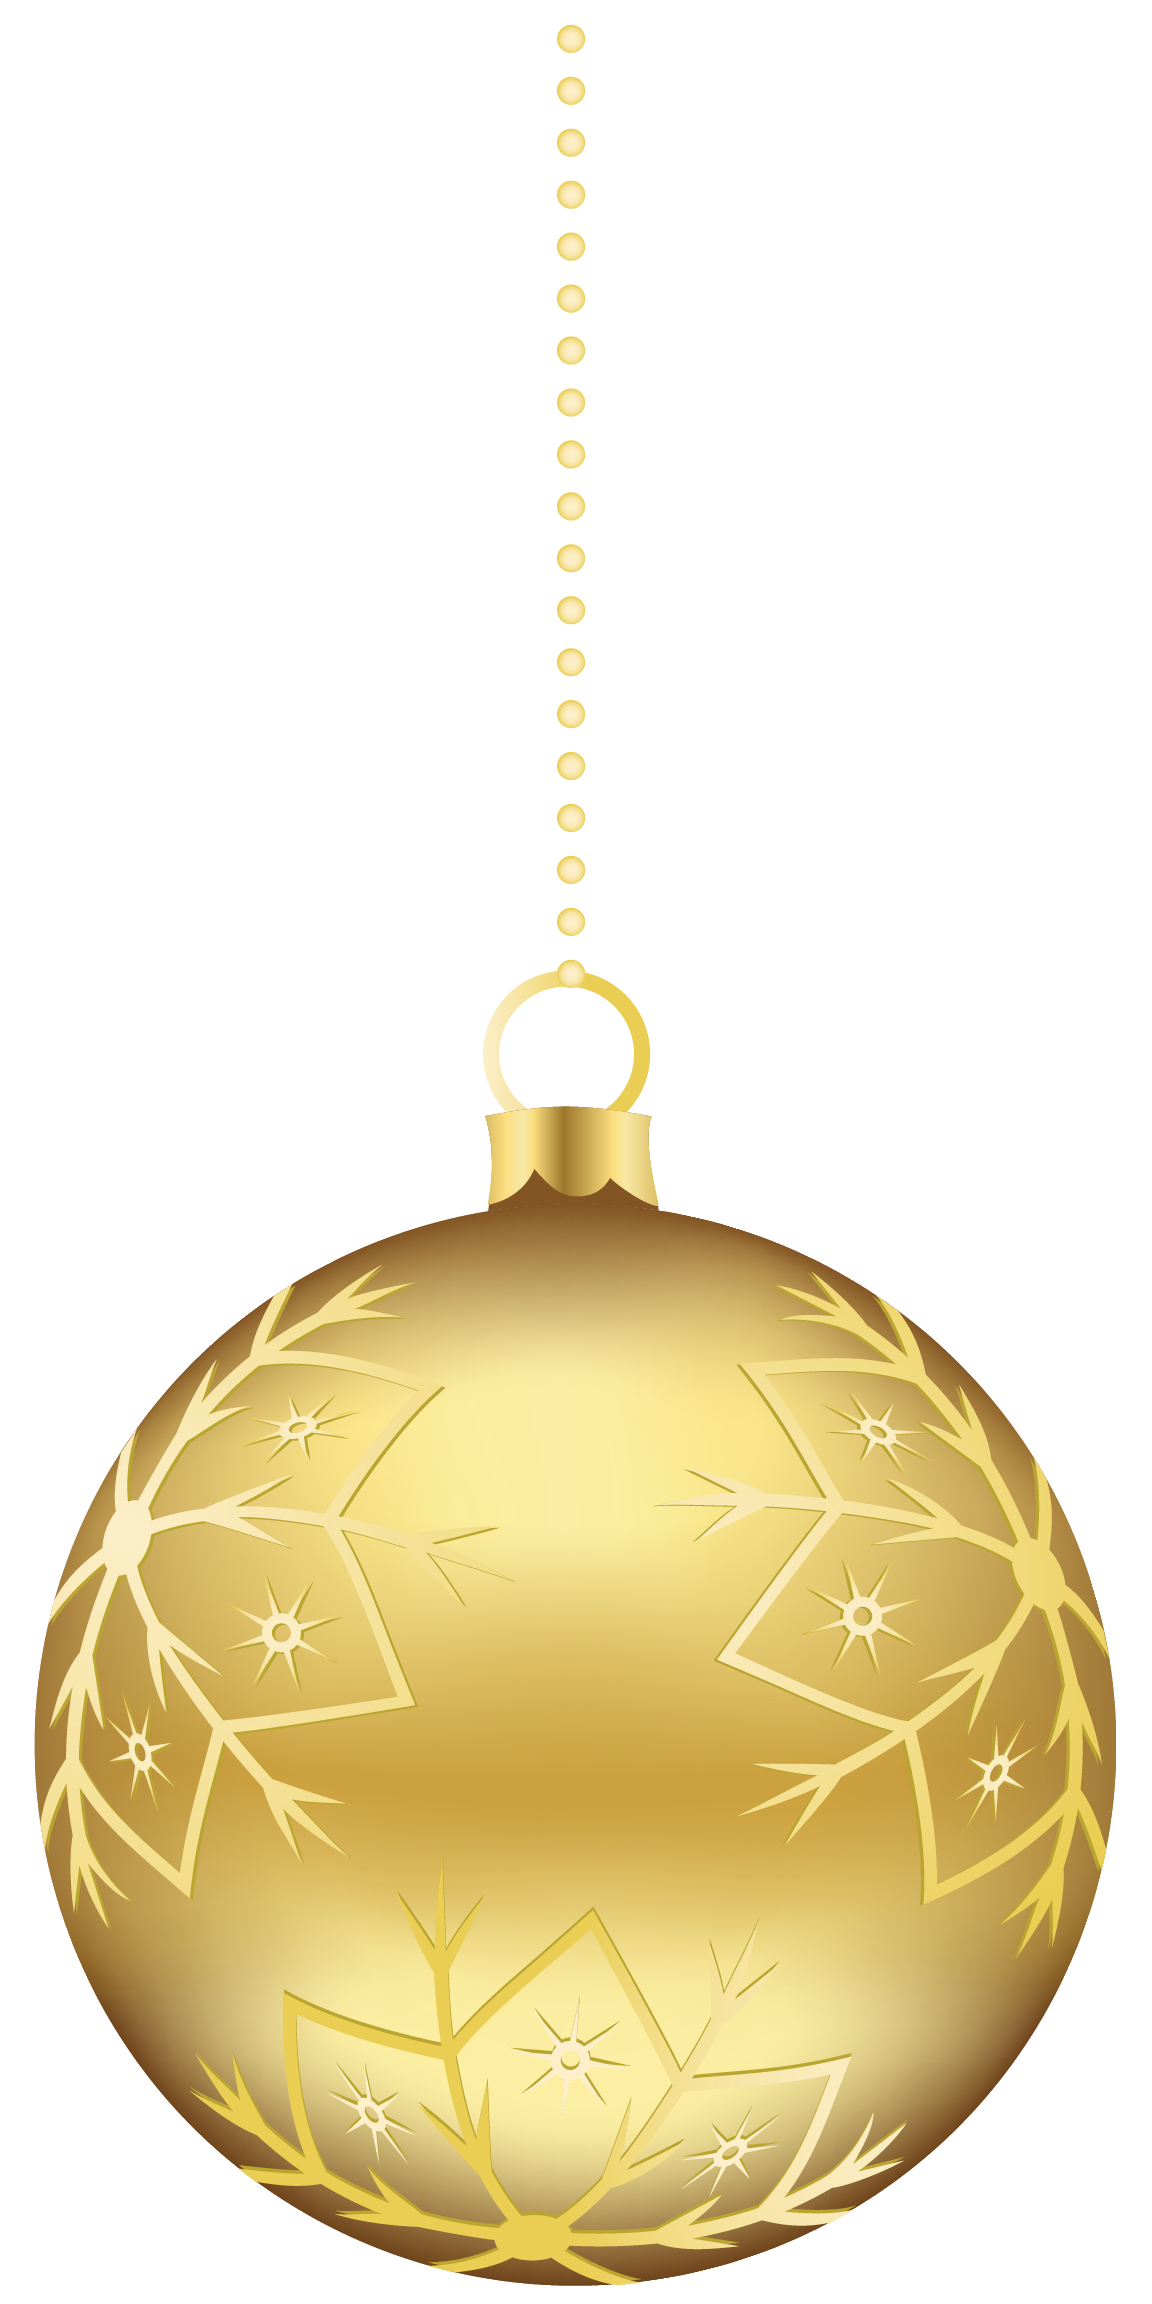 Gold Christmas Ornaments PNG Clipart